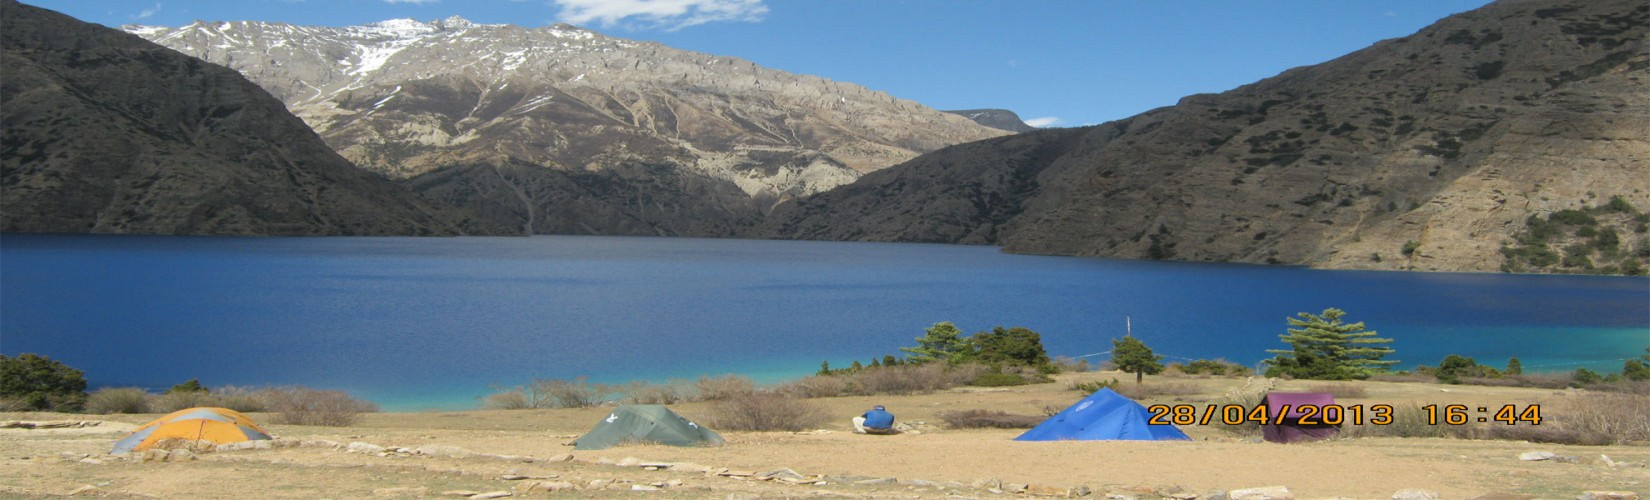 View of Shey Phoksundo Lake